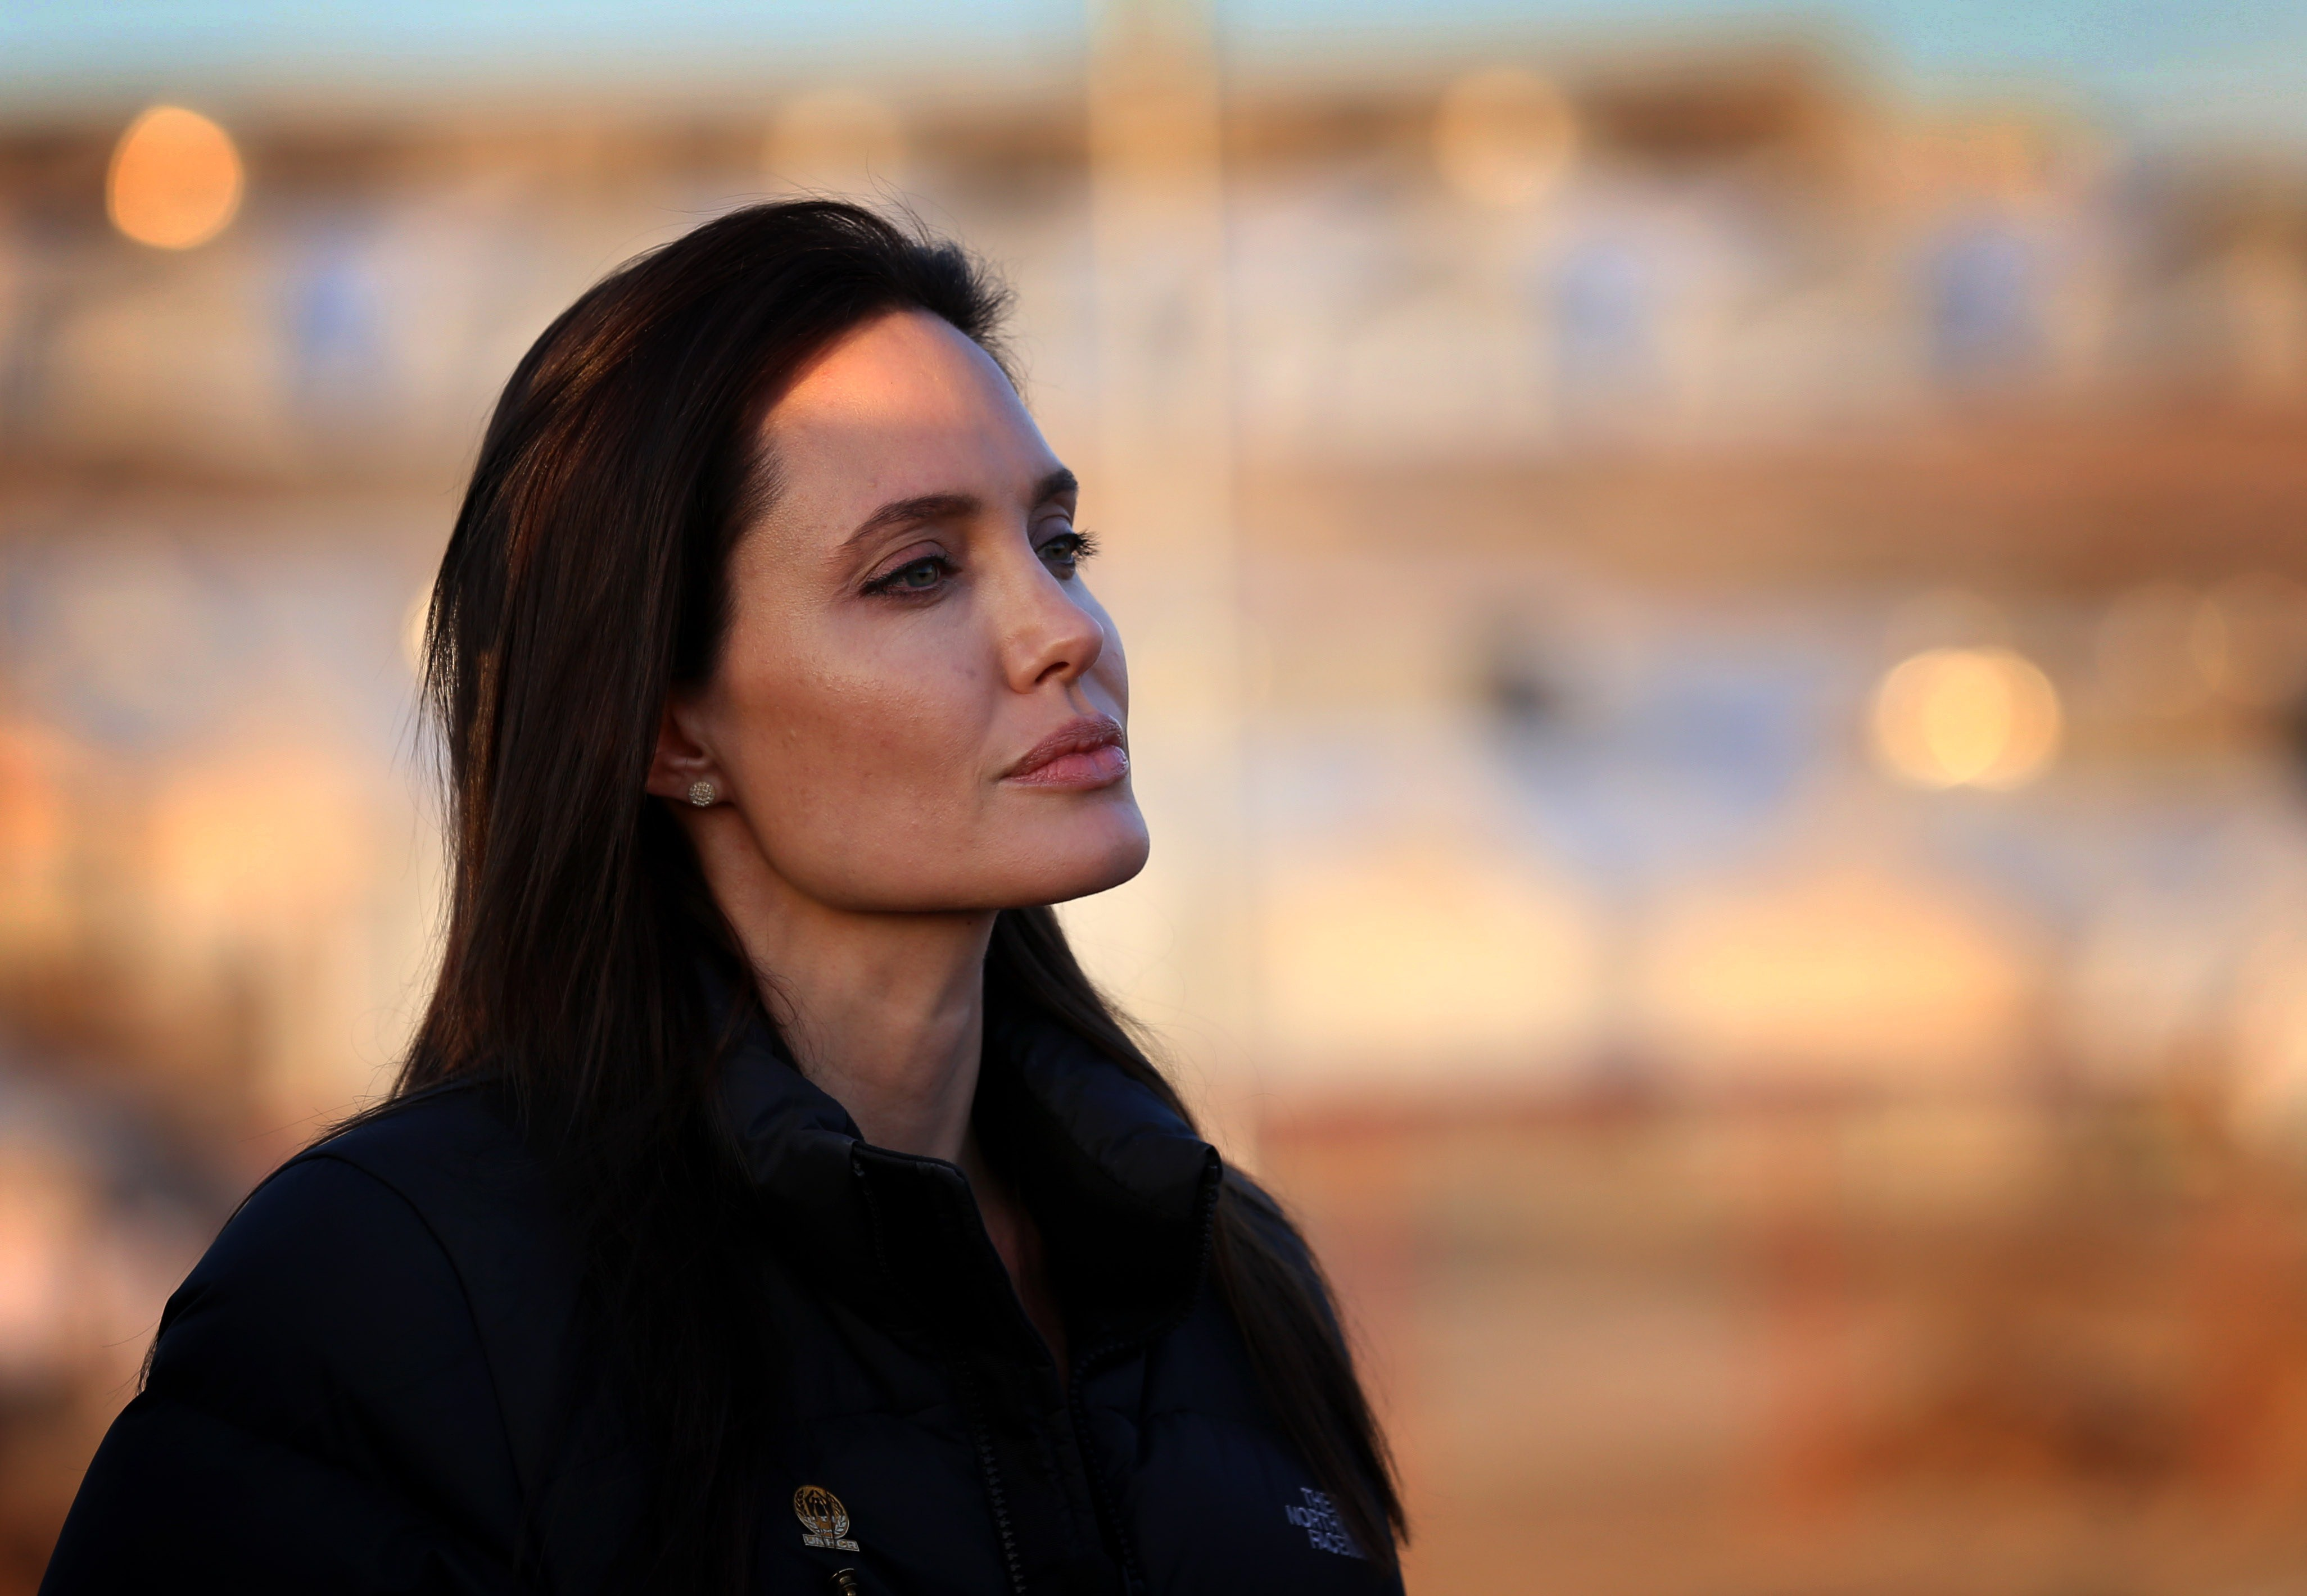 Angelina Jolie stands during a visit to a camp for displaced Iraqis in Khanke, a few miles from the Turkish border in Iraq's Dohuk province, on Jan. 25, 2015.